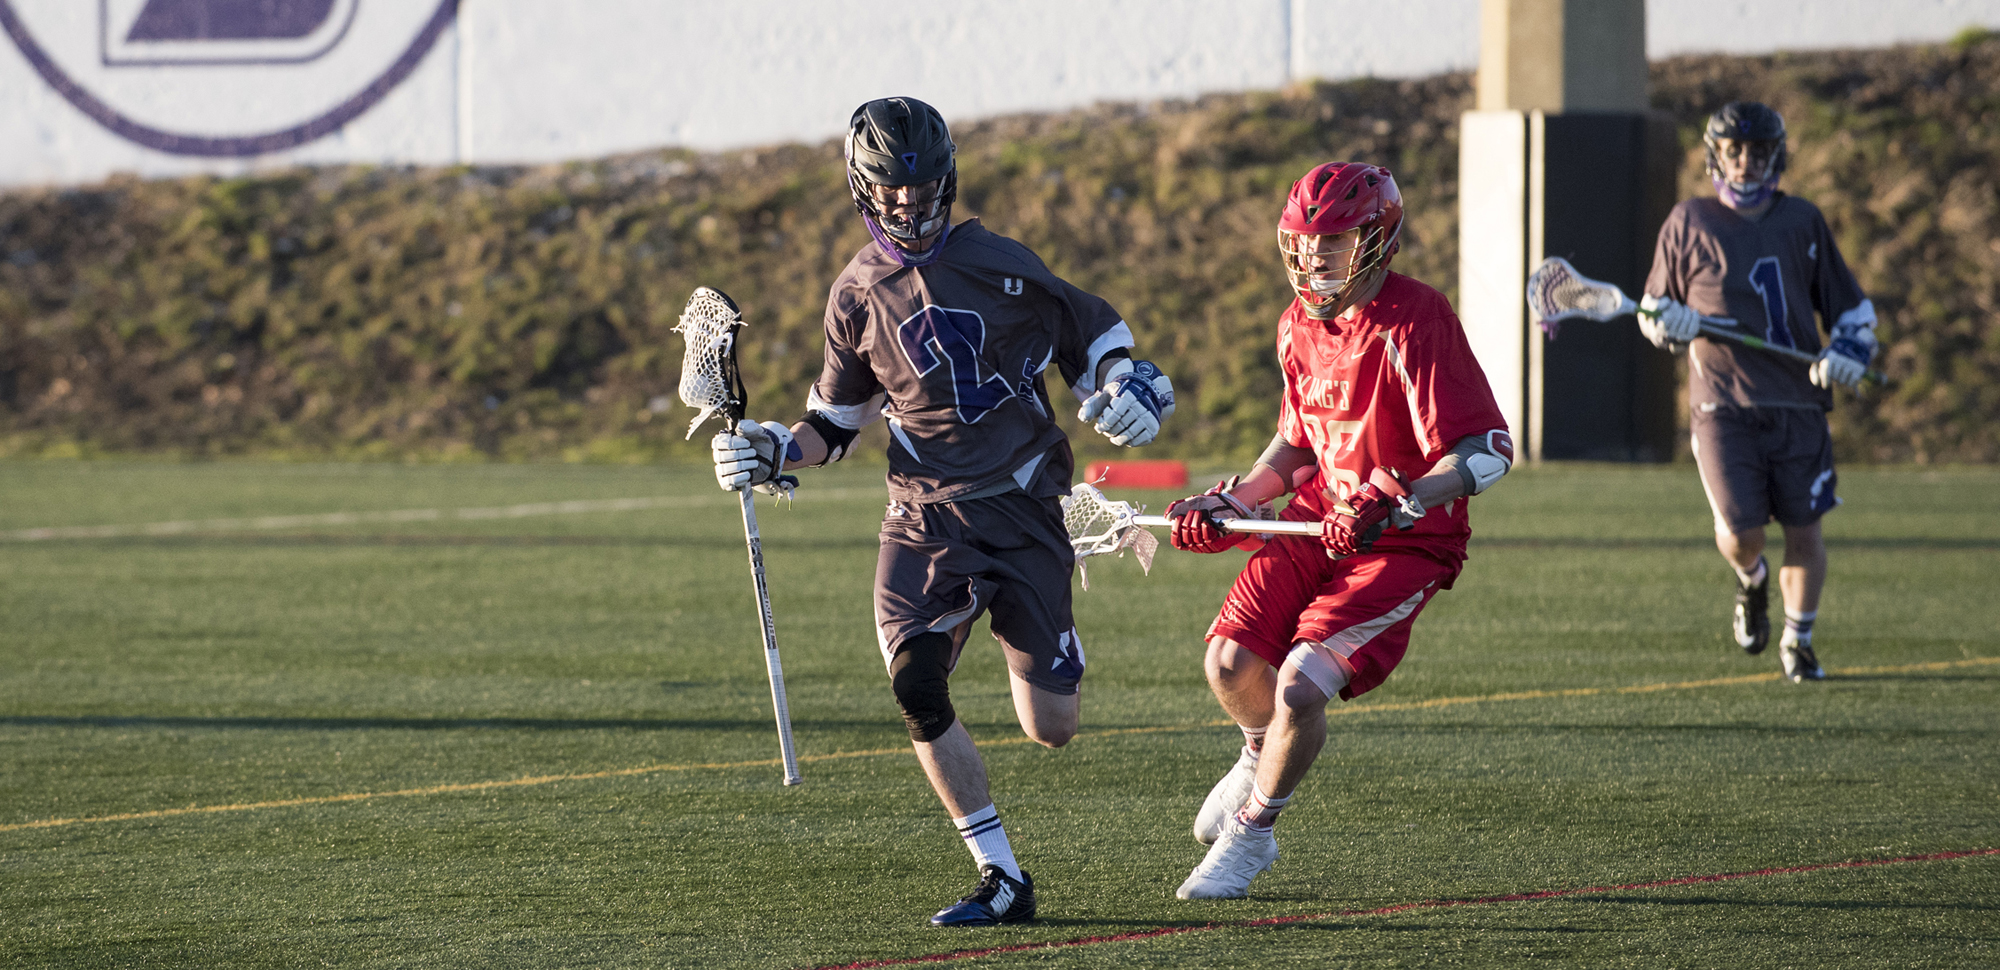 Junior midfielder William Joyce had two assists on Wednesday night.